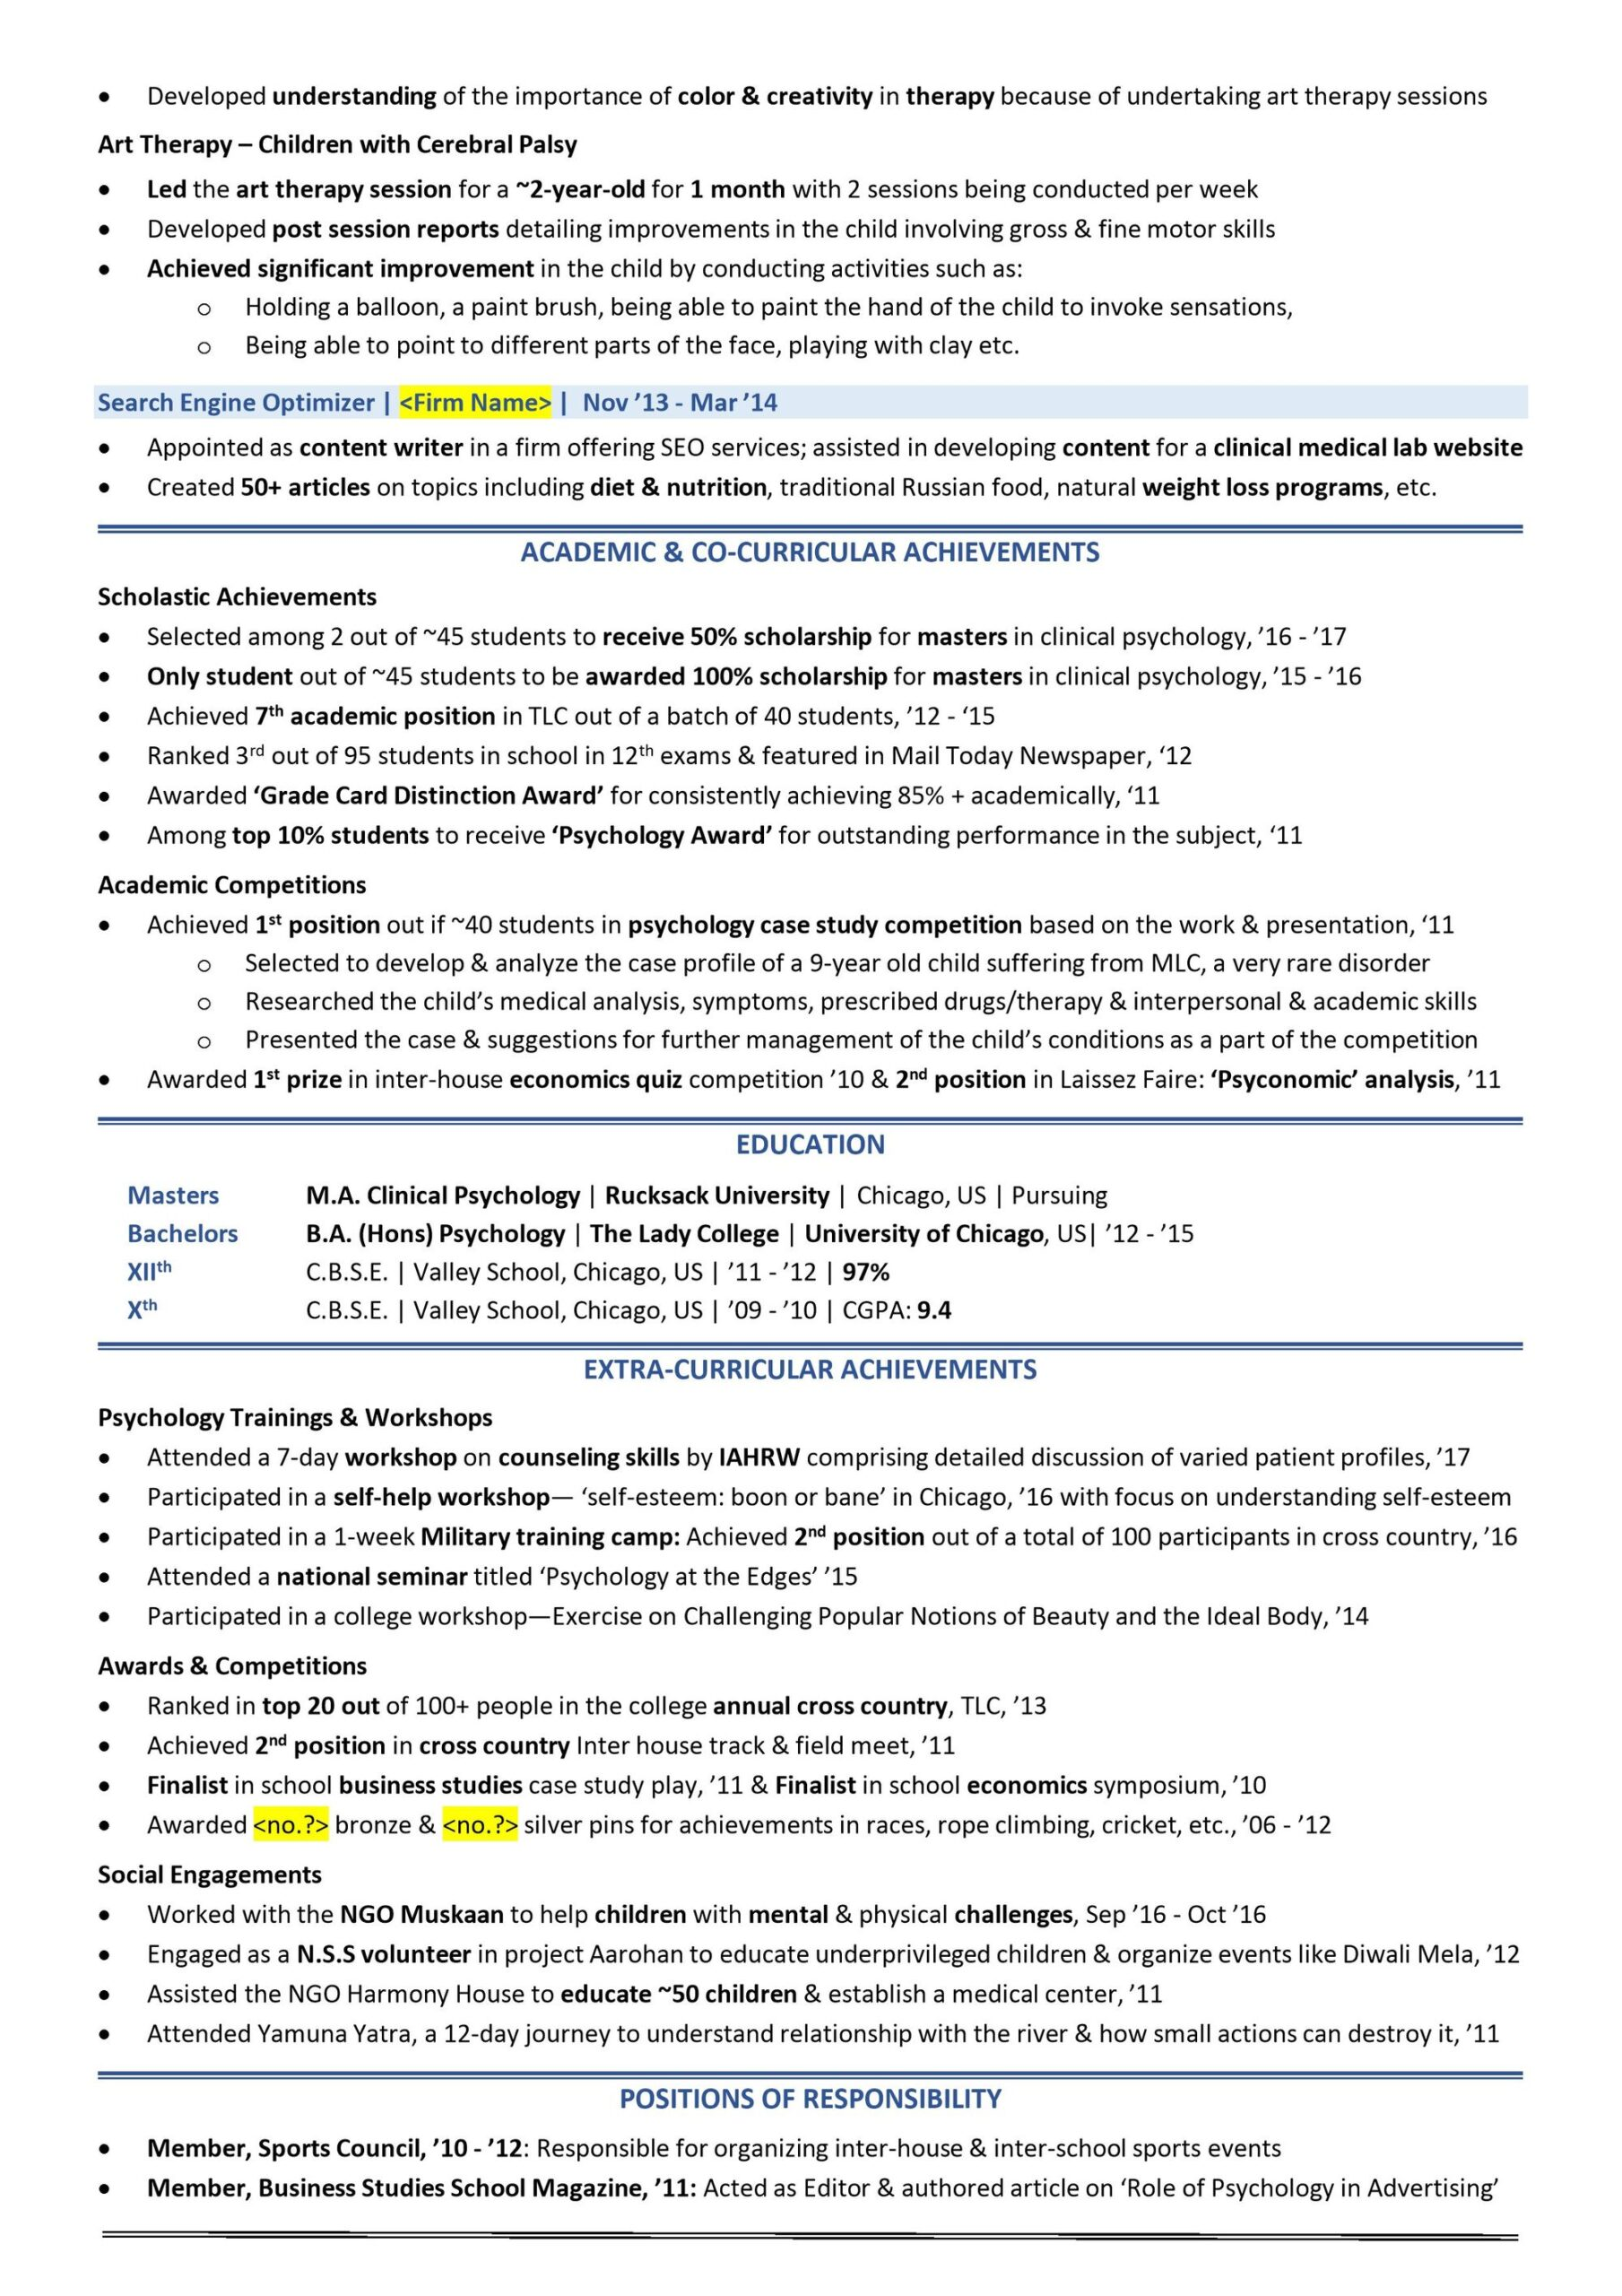 scholarship resume guide with examples samples sample template profile statement format Resume Scholarship Resume Sample